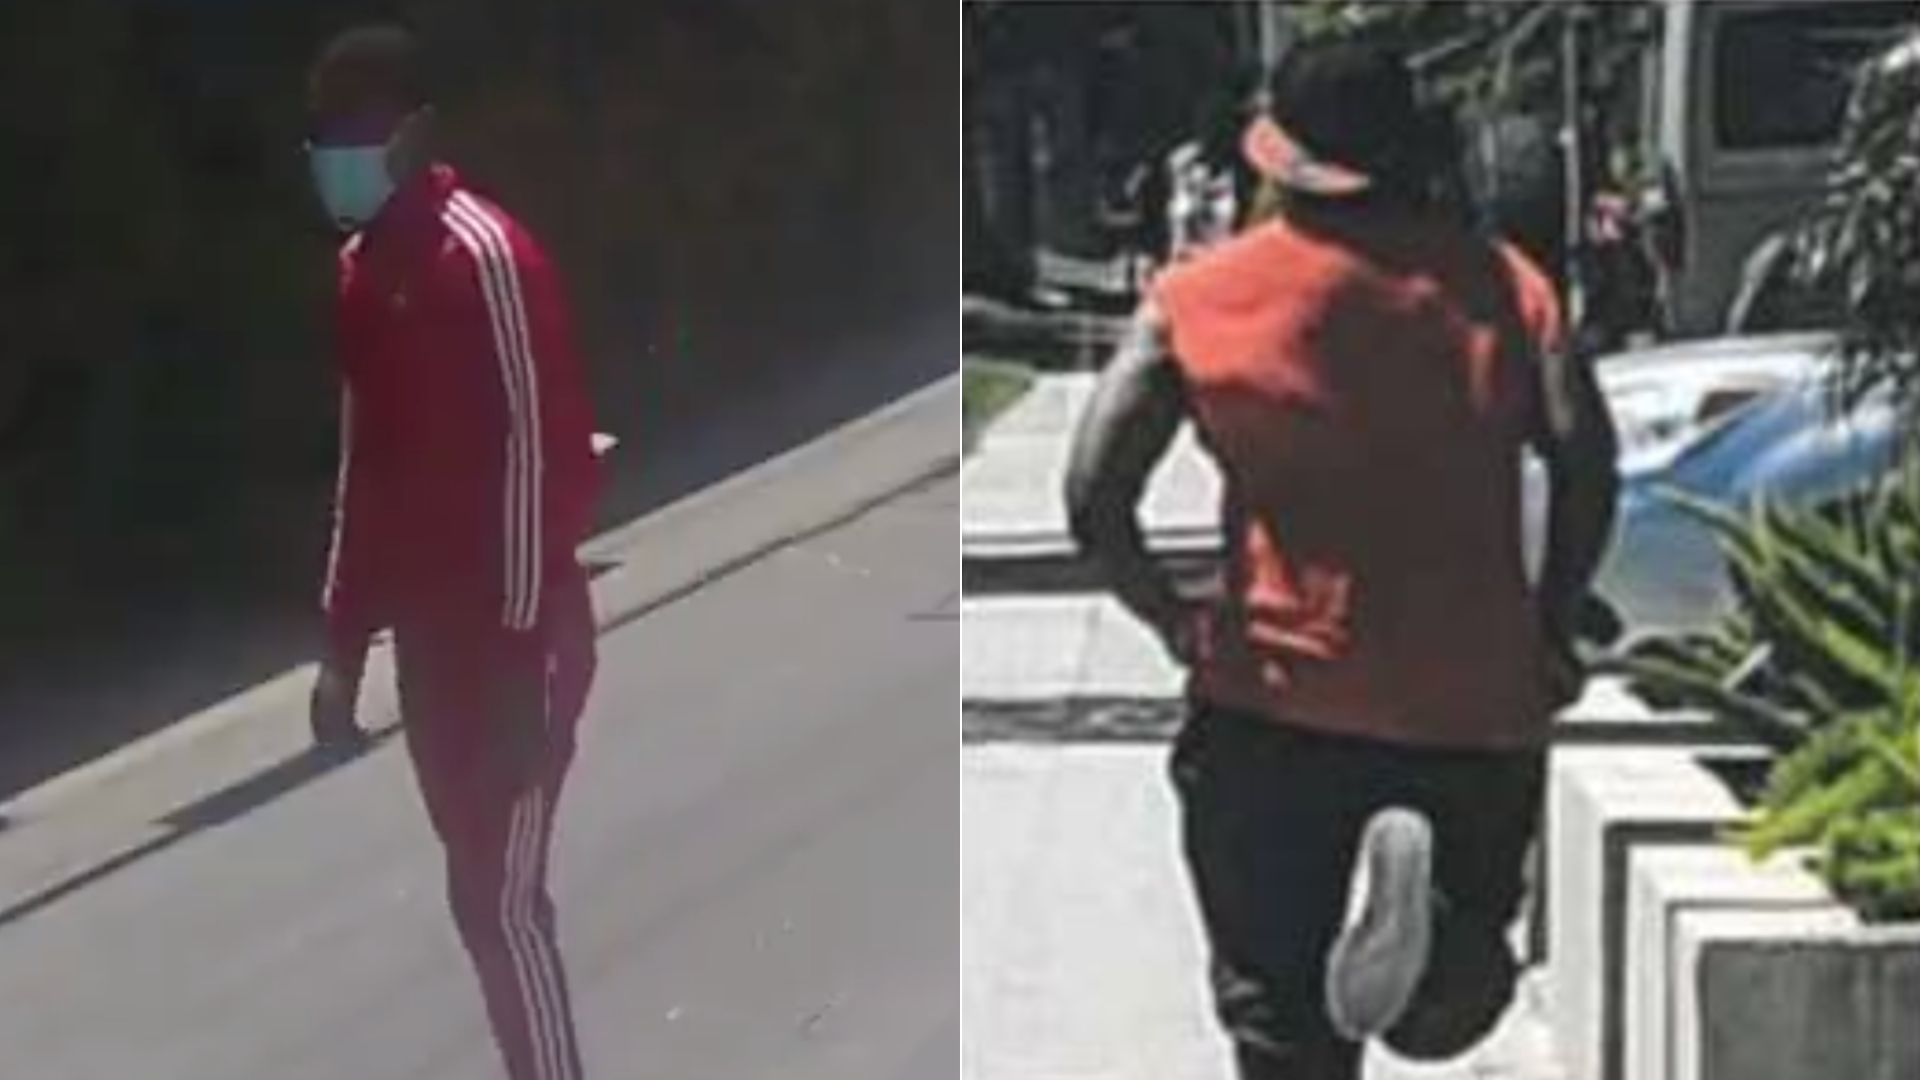 Two men accused in a string of sexual batteries in Palms and Venice are seen in images released June 17, 2020, by the Los Angeles Police Department.